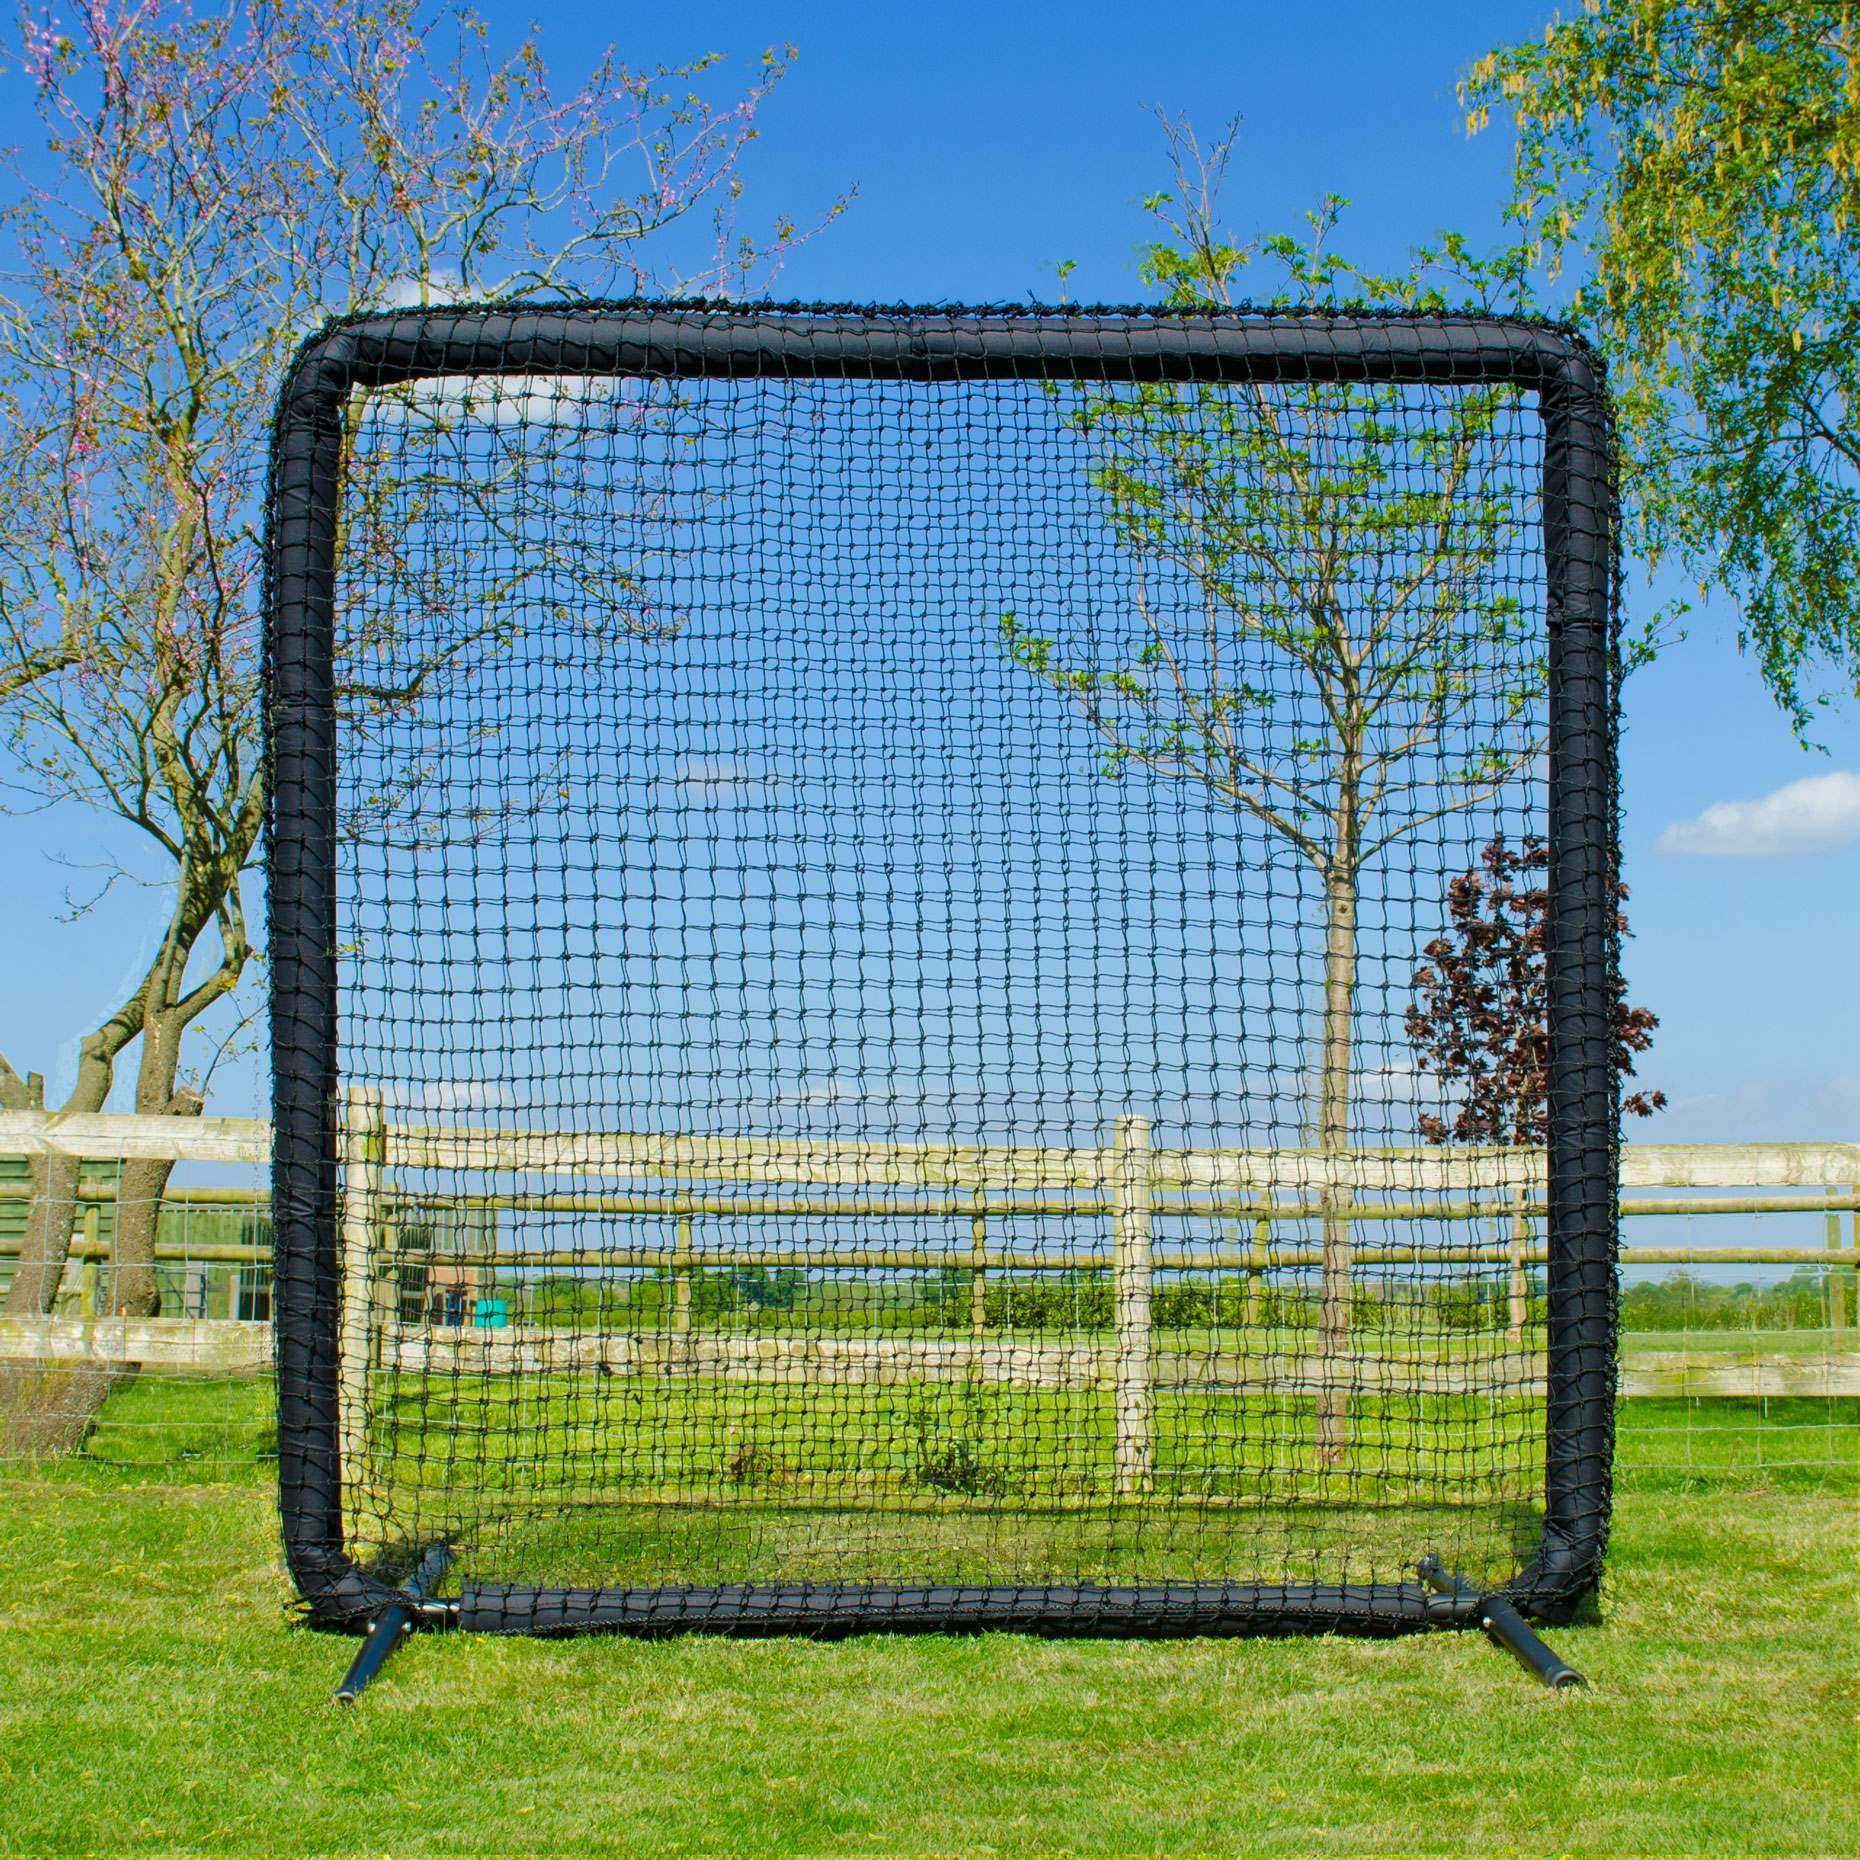 Nimitz Edition FORTRESS Square Protector Screen - The Ultimate In Baseball Protection